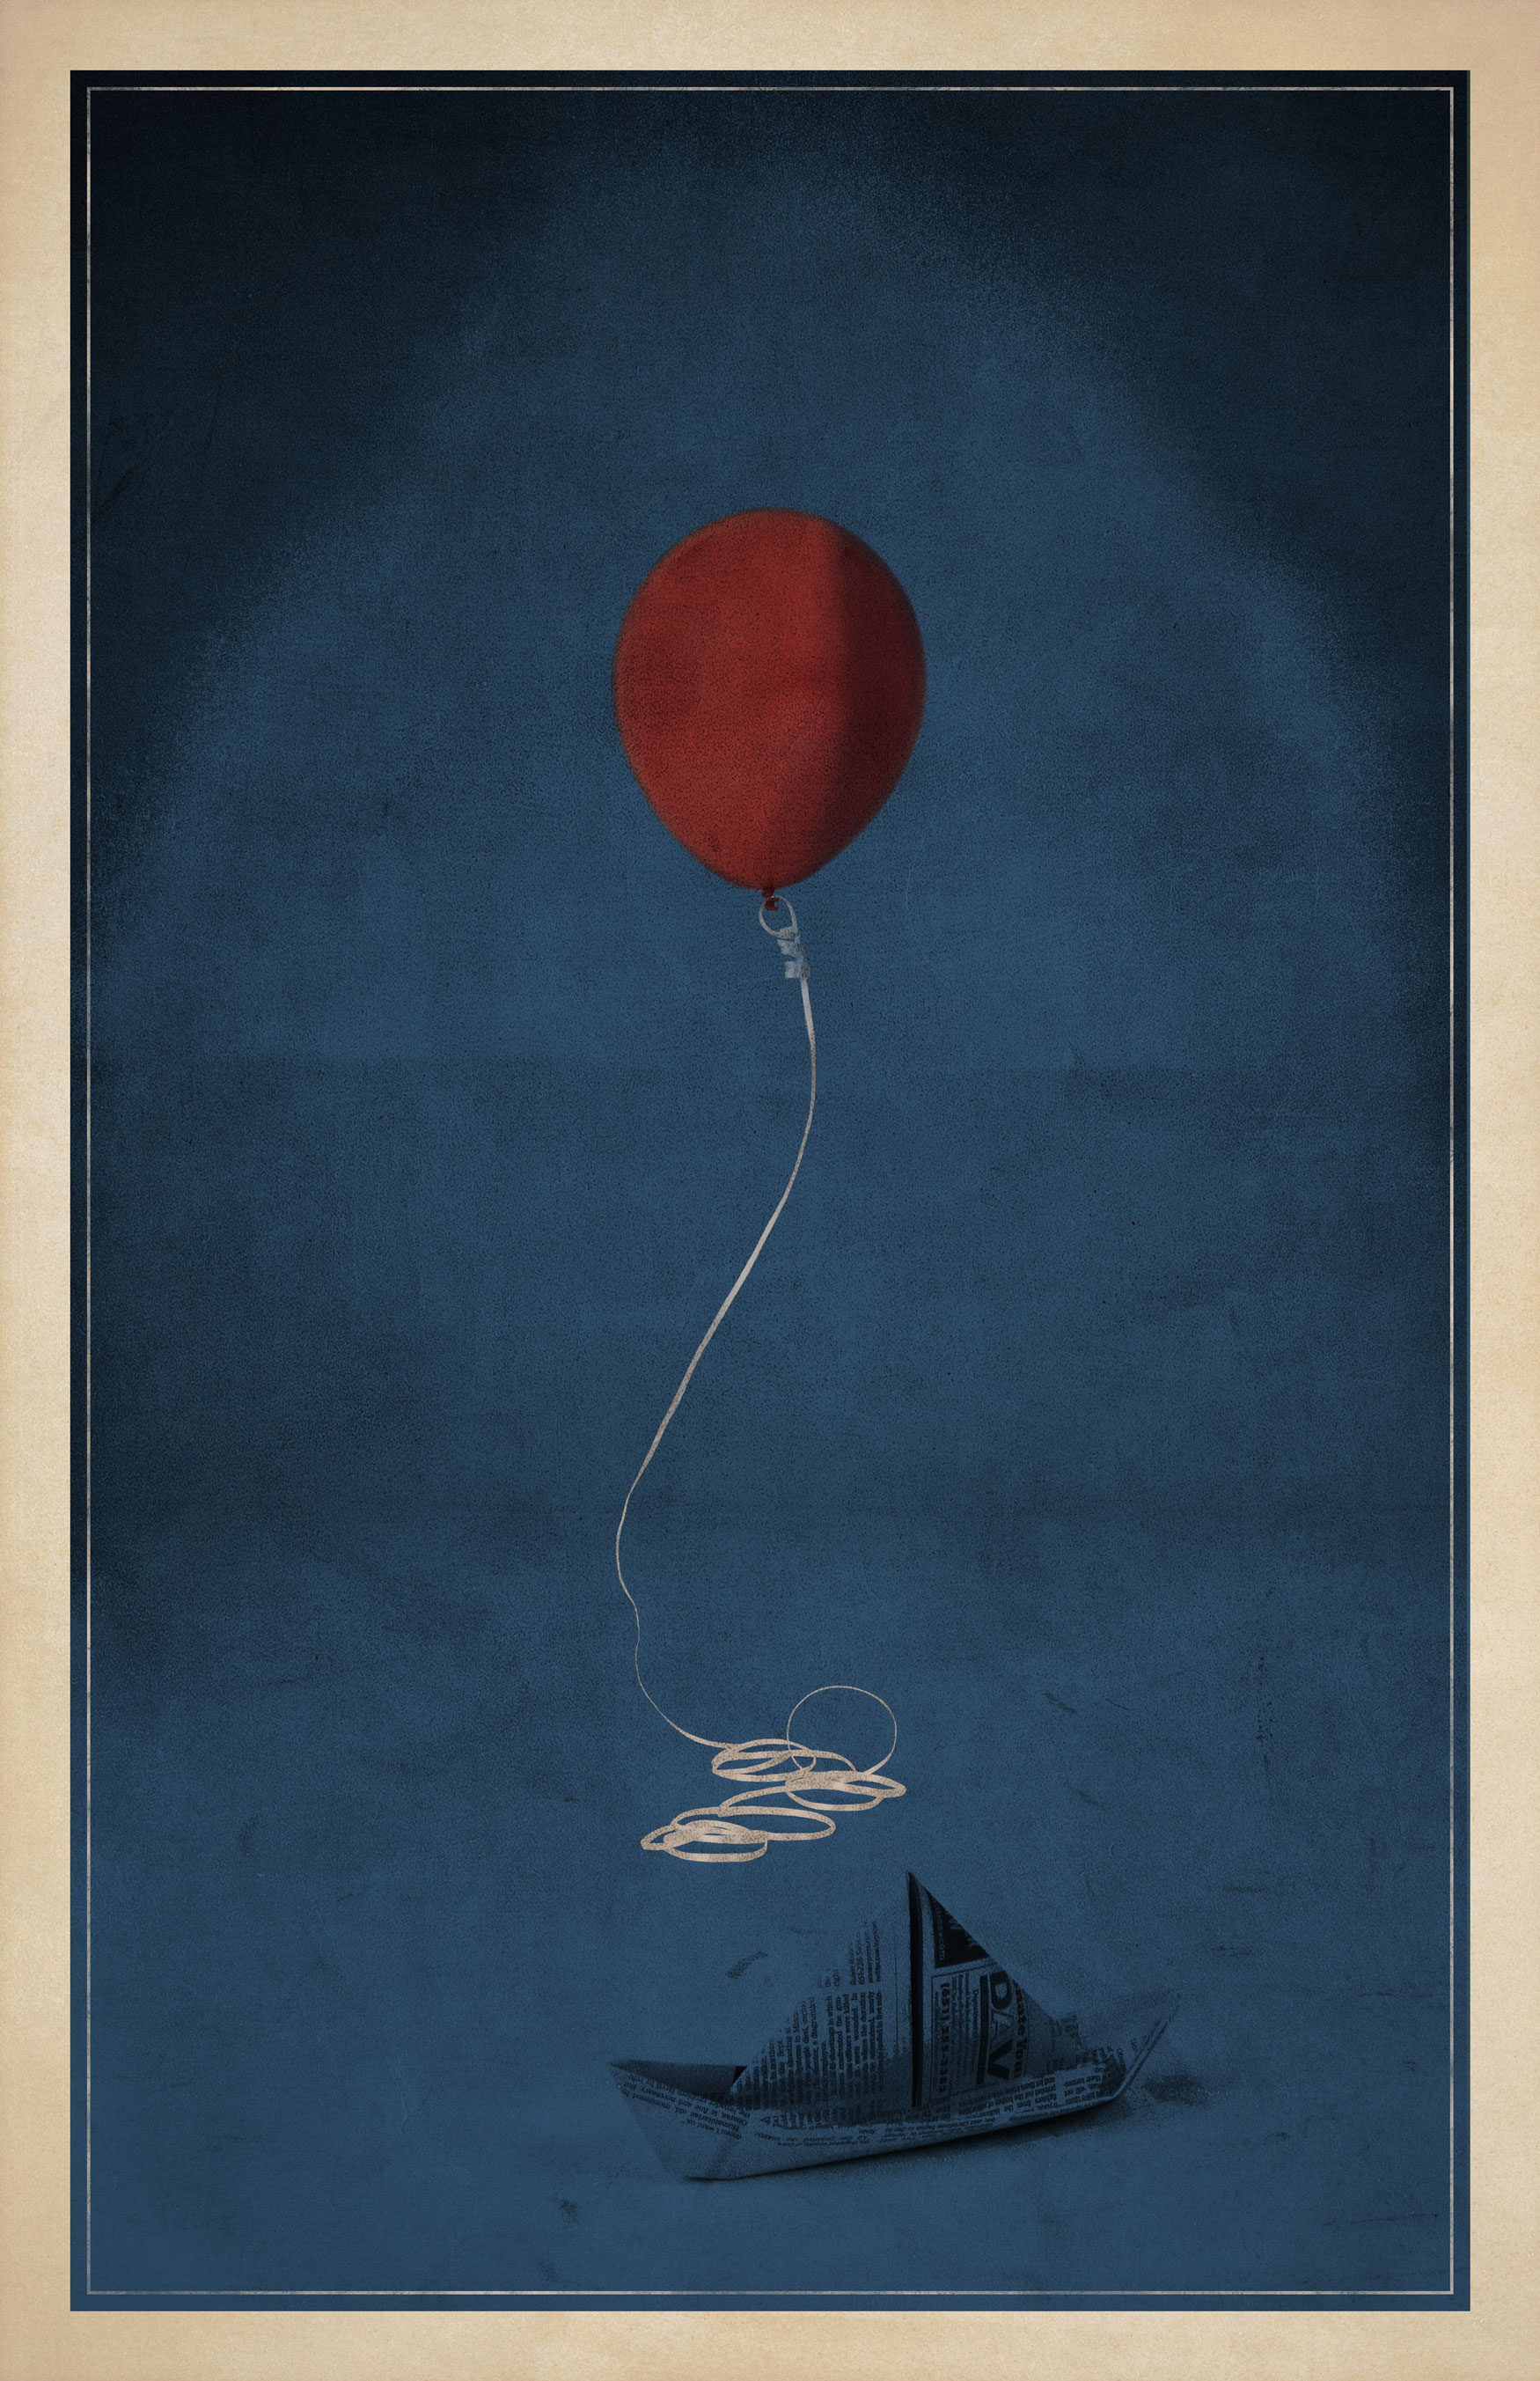 10 Minimalist Horror Movie Posters - Halloween Costumes Blog